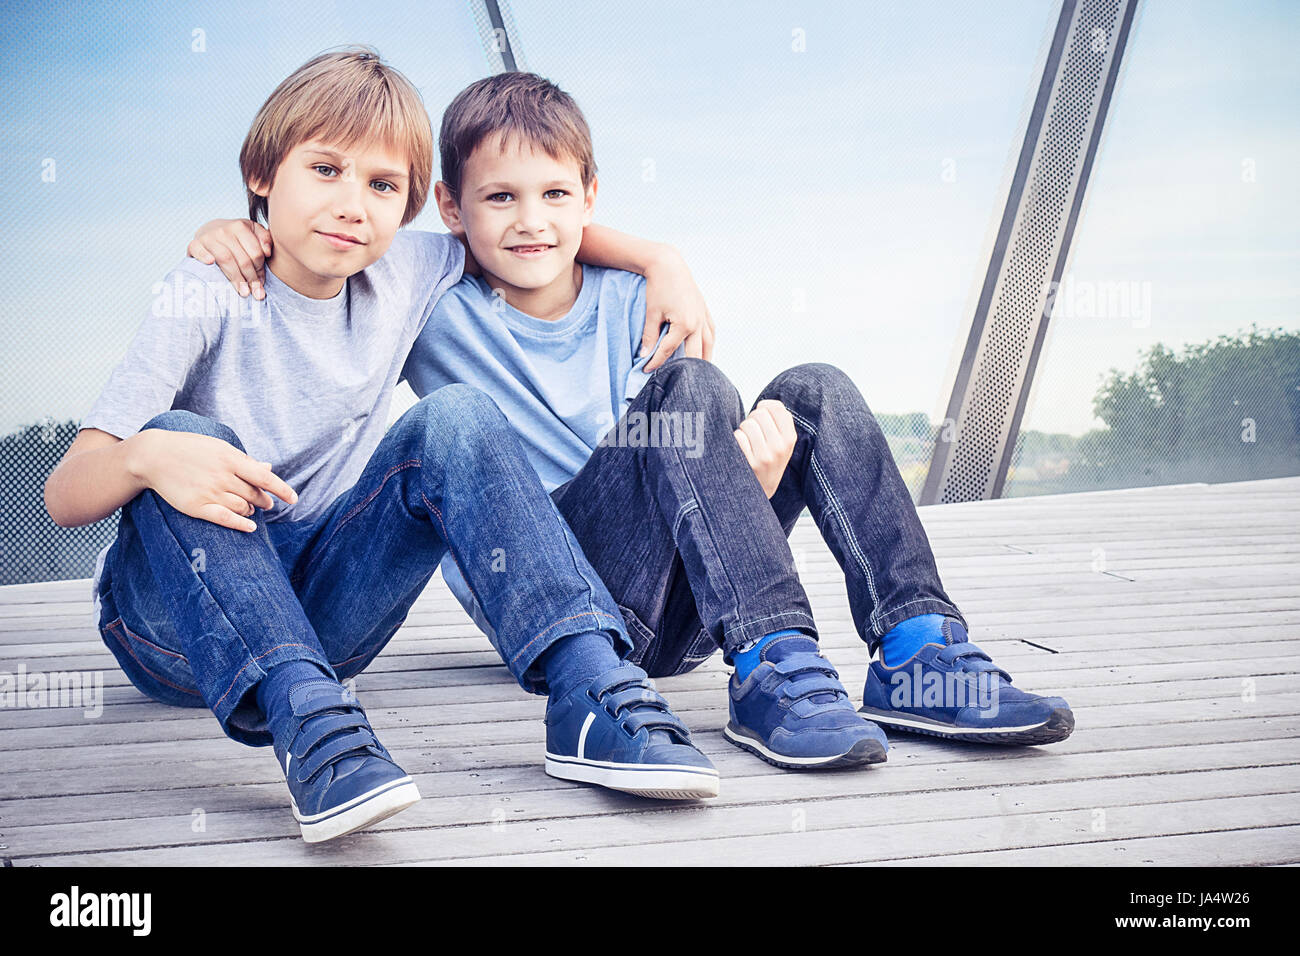 Two happy kids sitting together and embracing - Stock Image